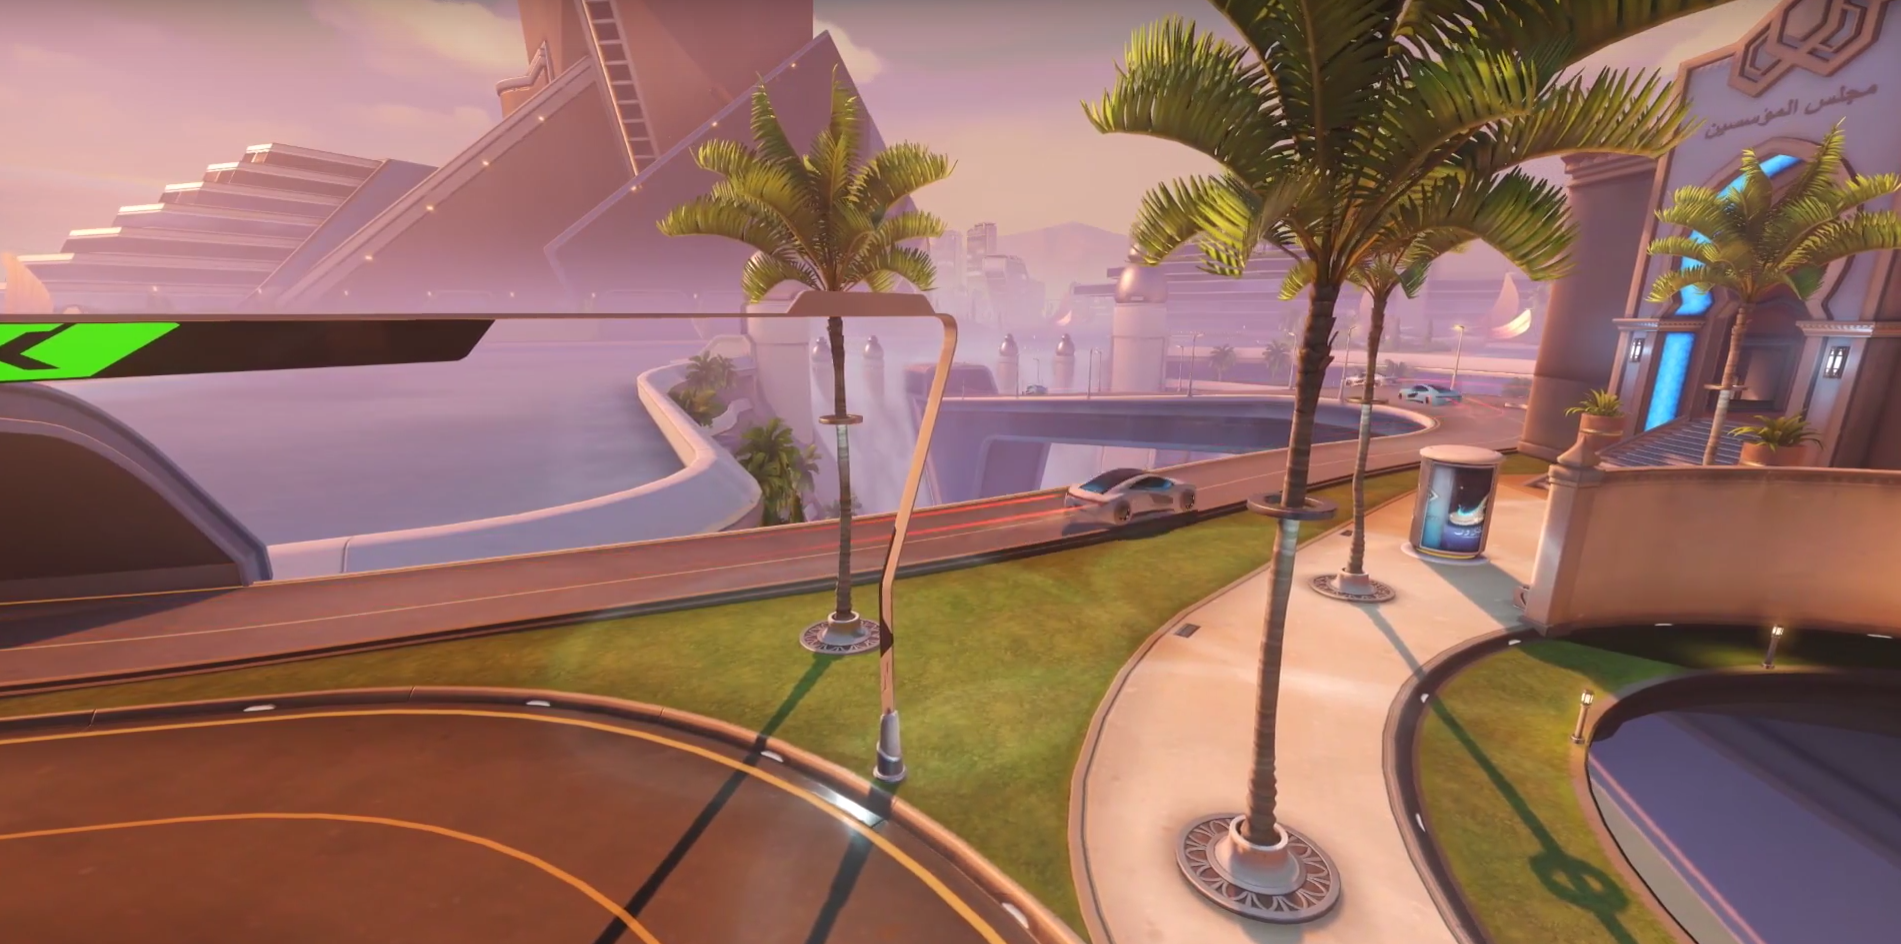 Overwatch Oasis Map - City Center